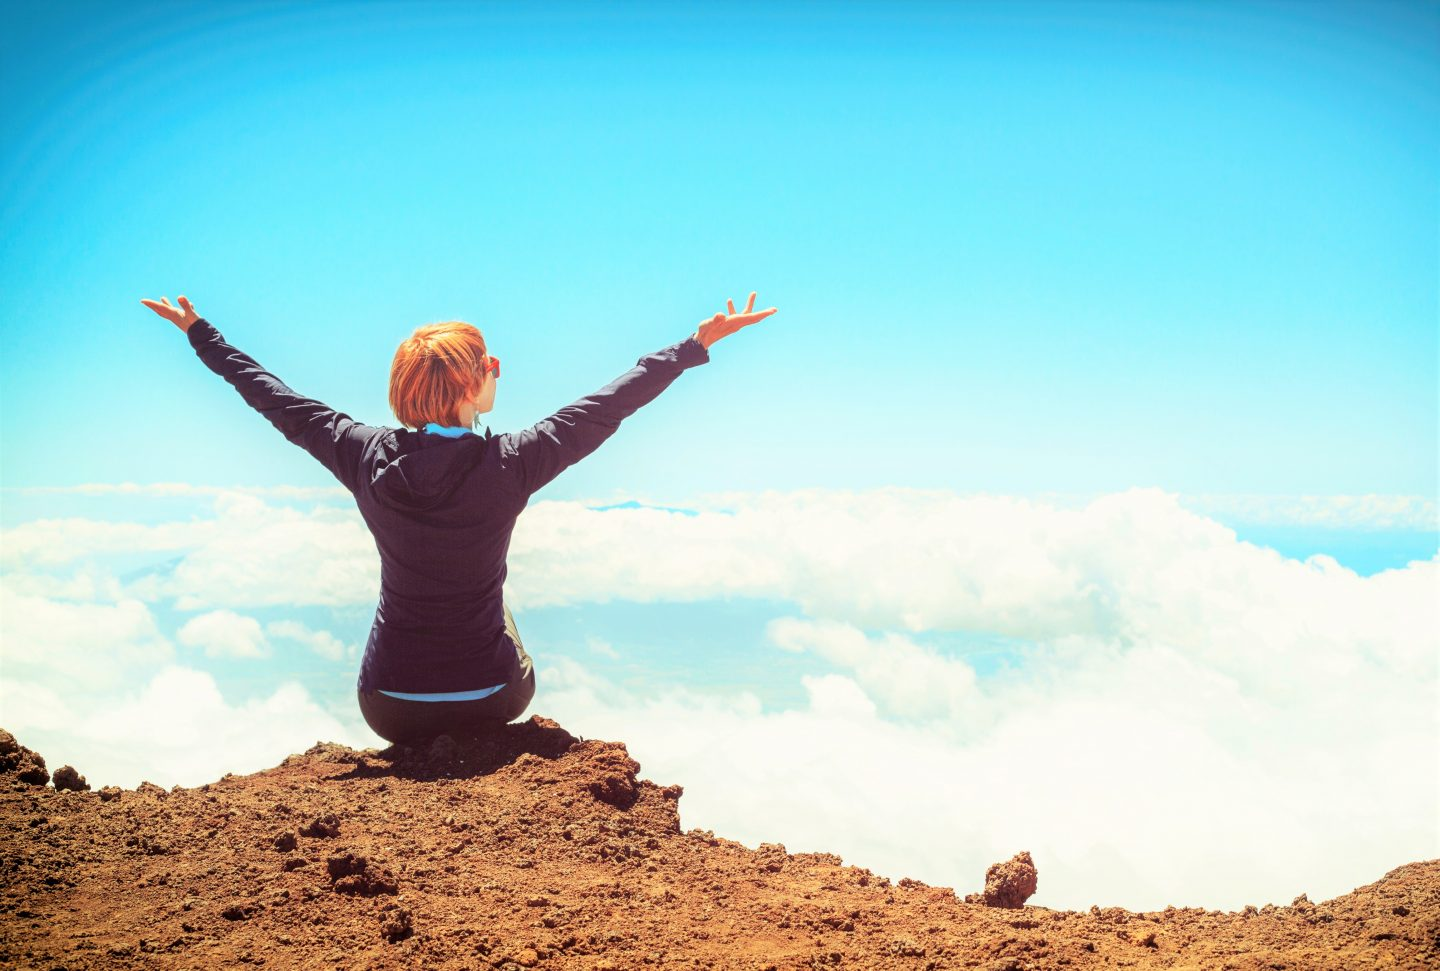 A woman sitting on top of a cliff looking out at the sky with her arms held up towards it.